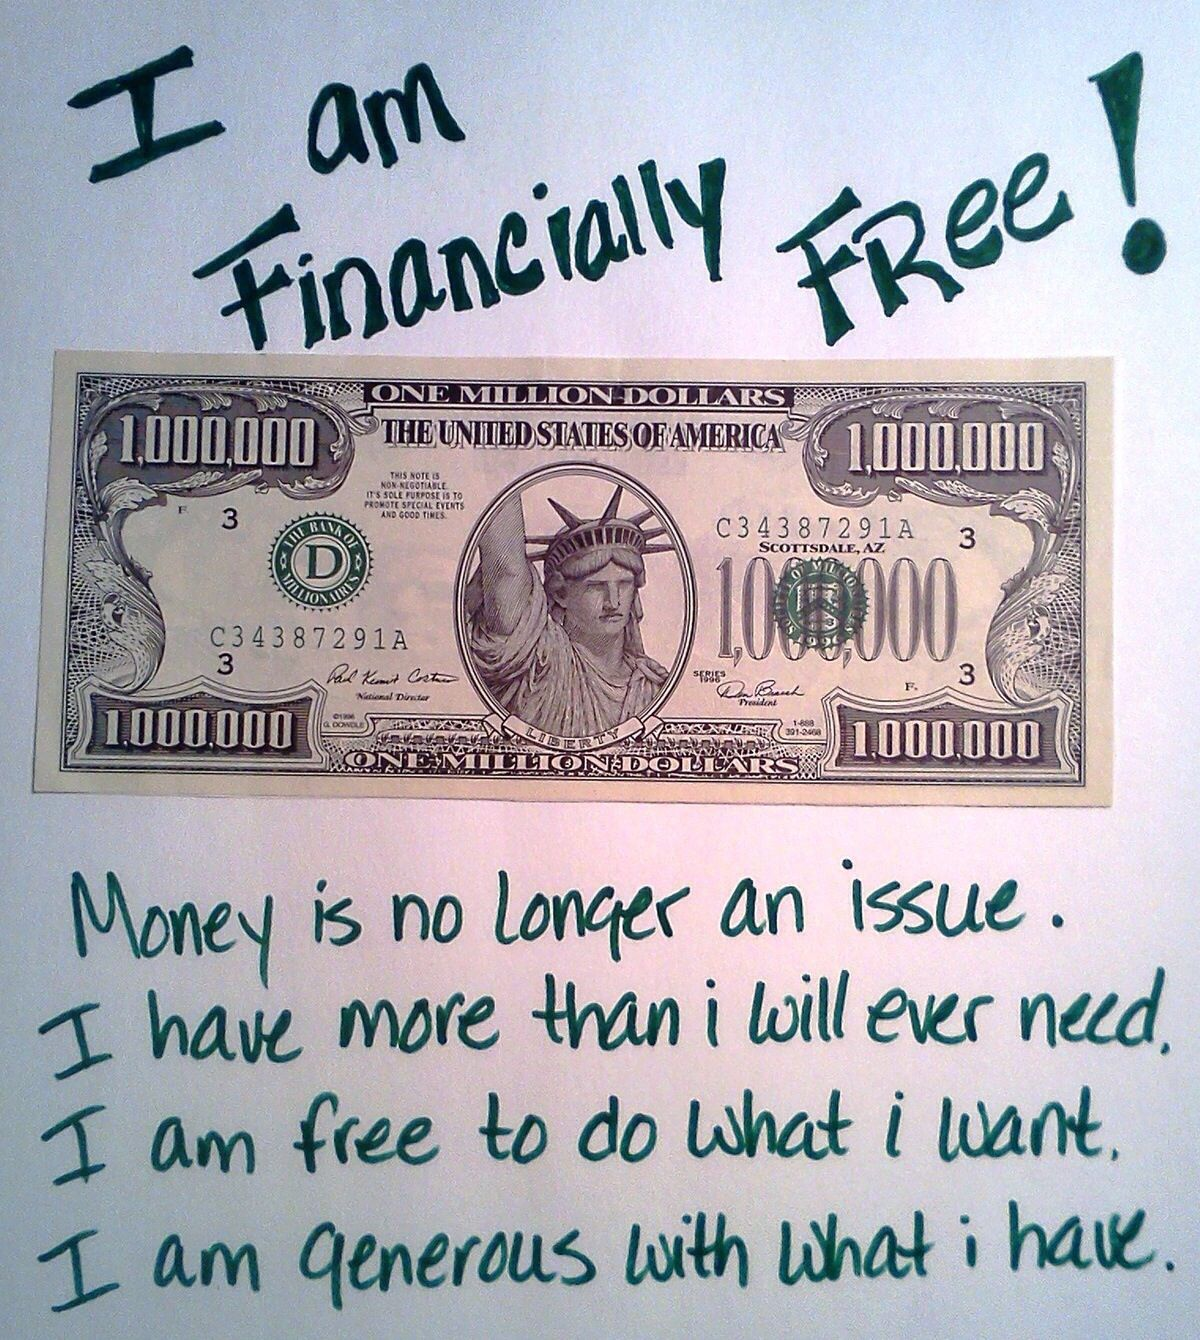 My Hard Work And Dedication Will Gain Me Financial Freedom